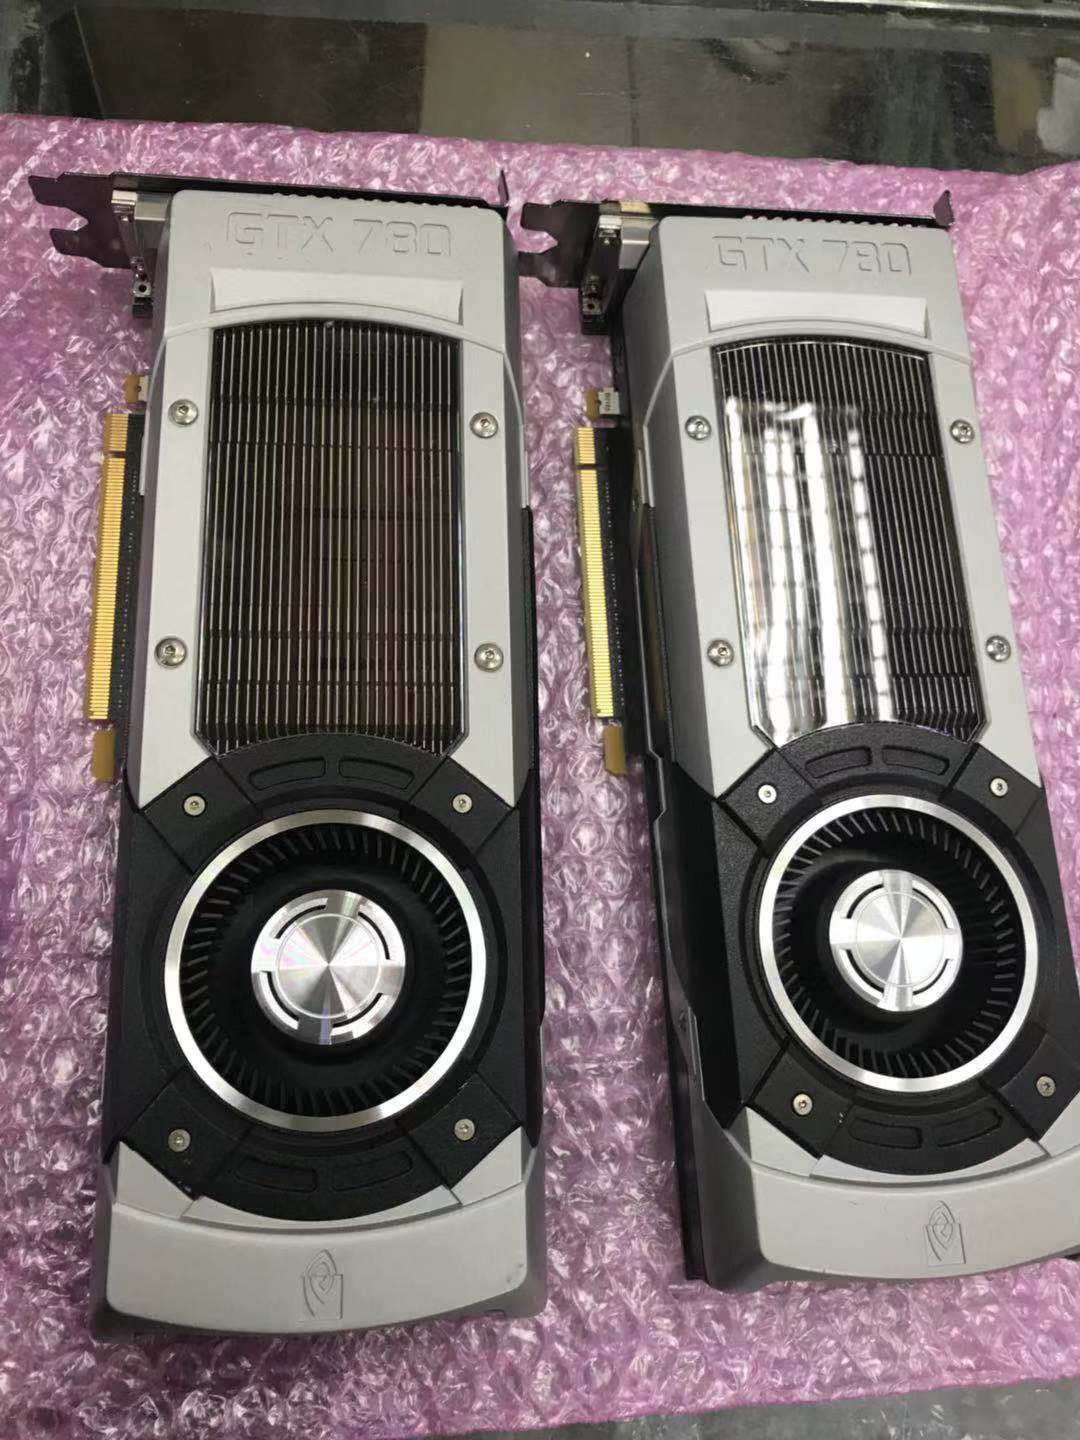 ASUS GTX780 3G Public Graphics Card Titan Shell/ High Frequency/ Professional Game Graphics